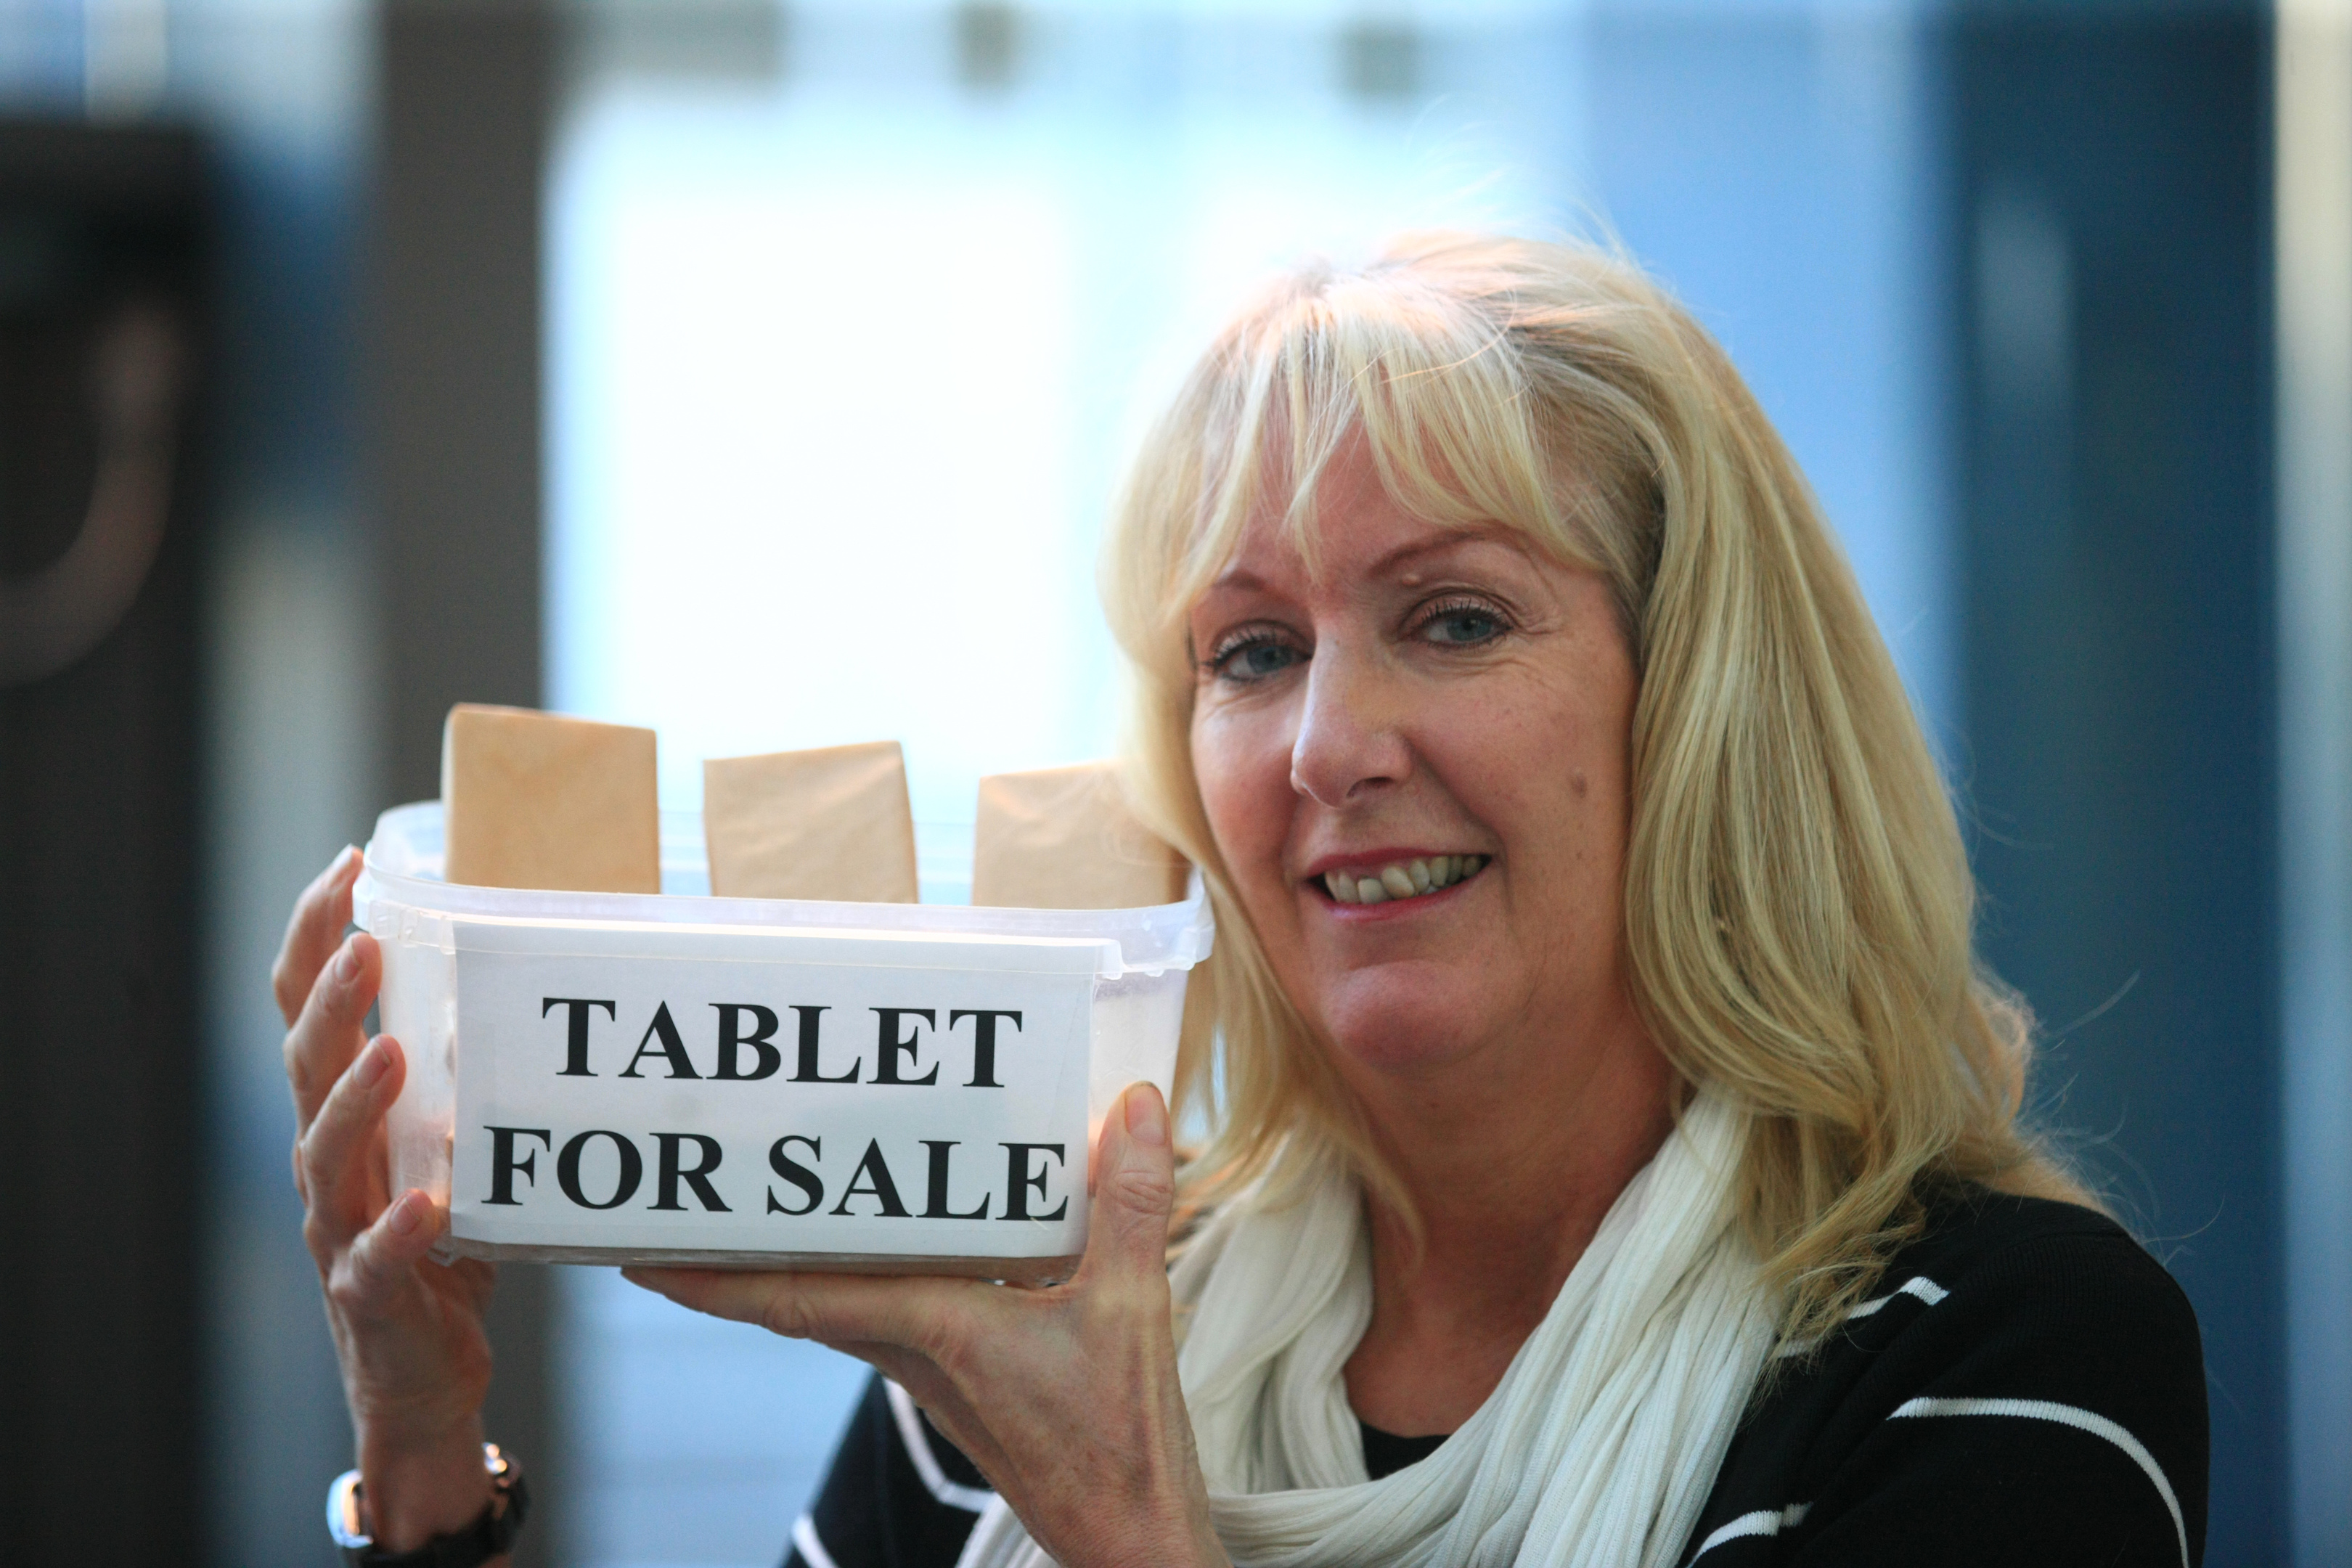 Fiona Edwards with some of her tablet.